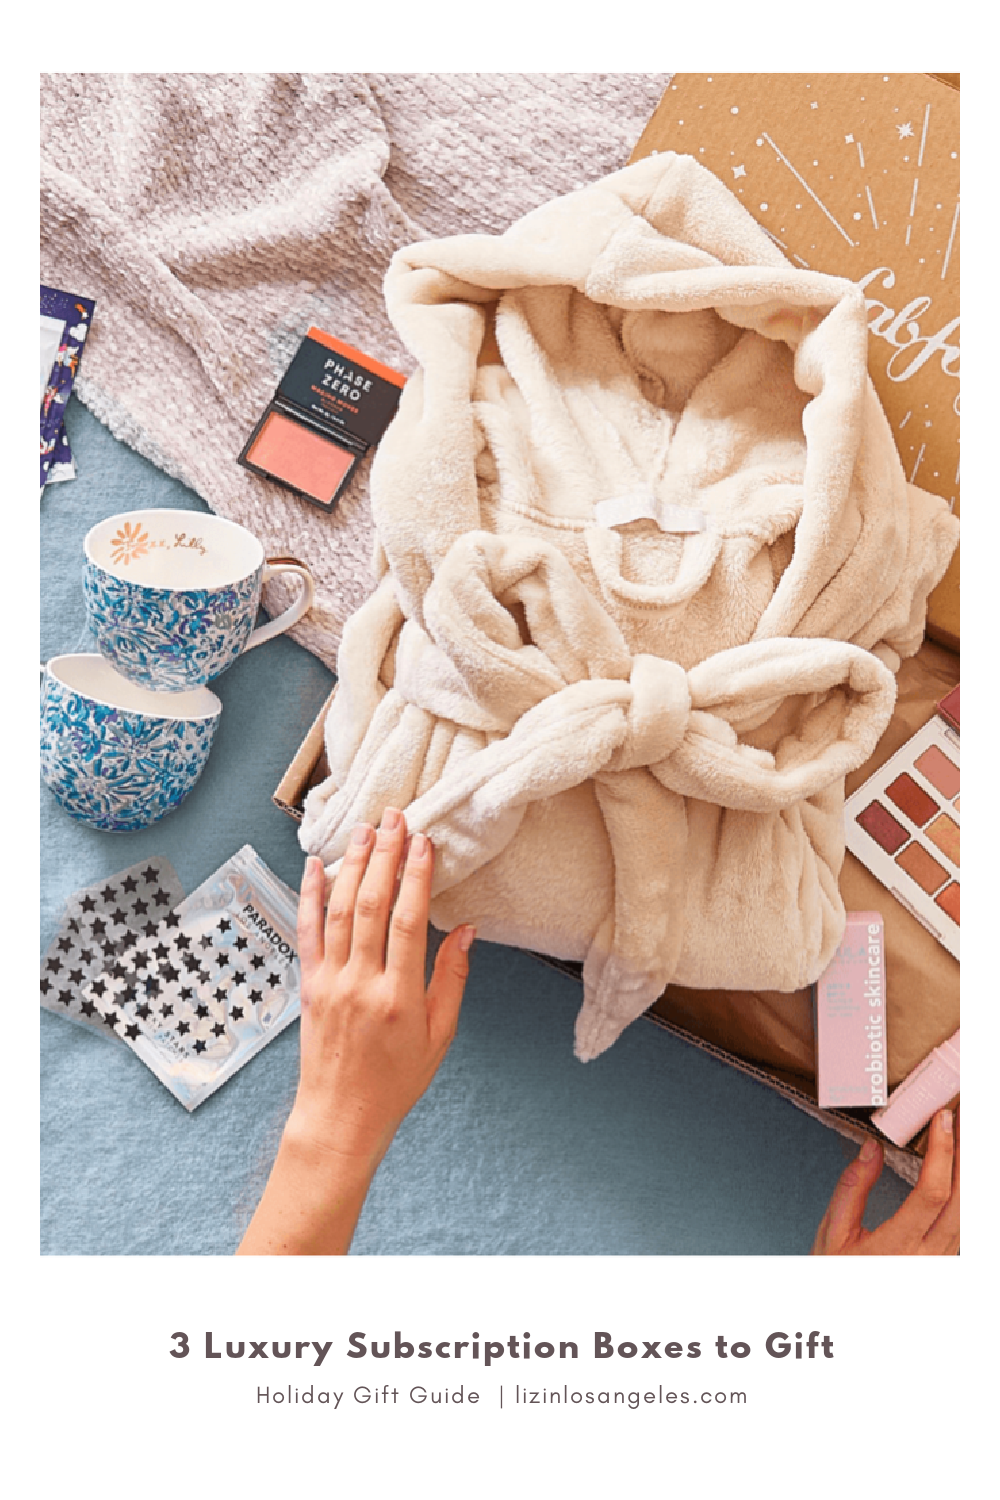 3 Luxury Subscription Boxes to Gift, a blog post by Liz in Los Angeles, top Los Angeles lifestyle blogger, an image of items in a luxury subscription box like a bathrobe and beauty items